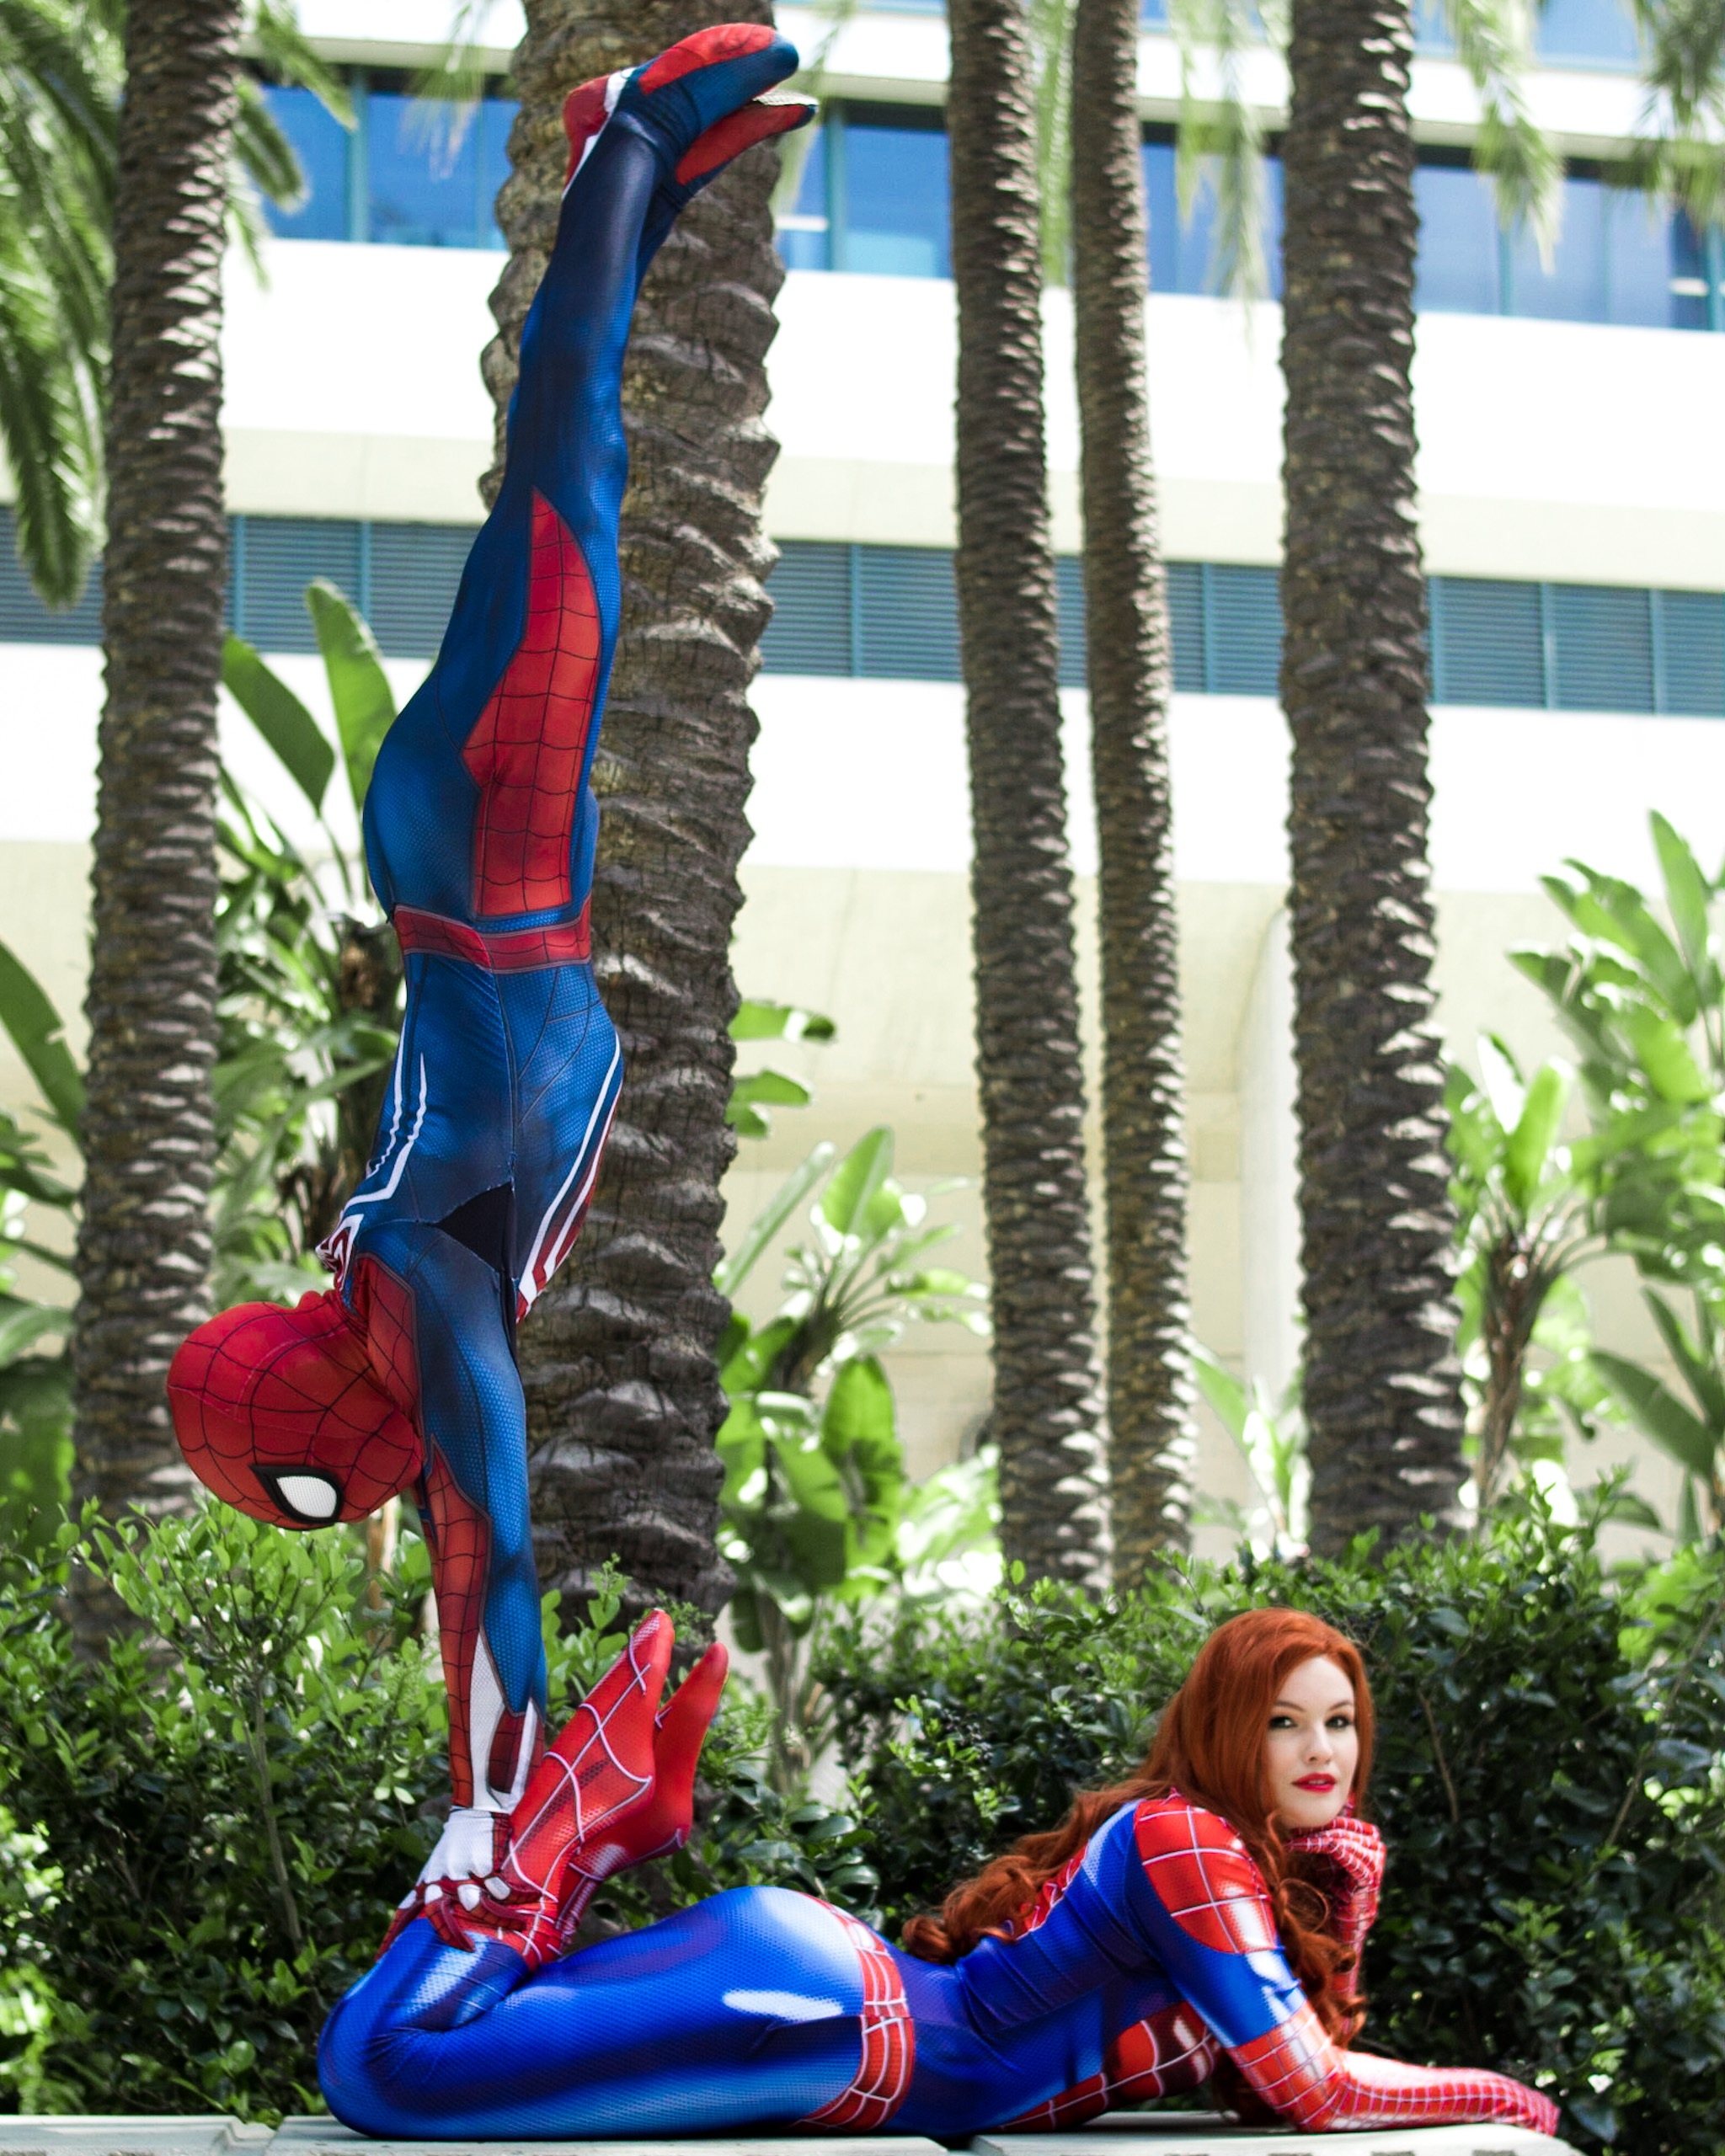 Spiderman handstand on Mary Jane